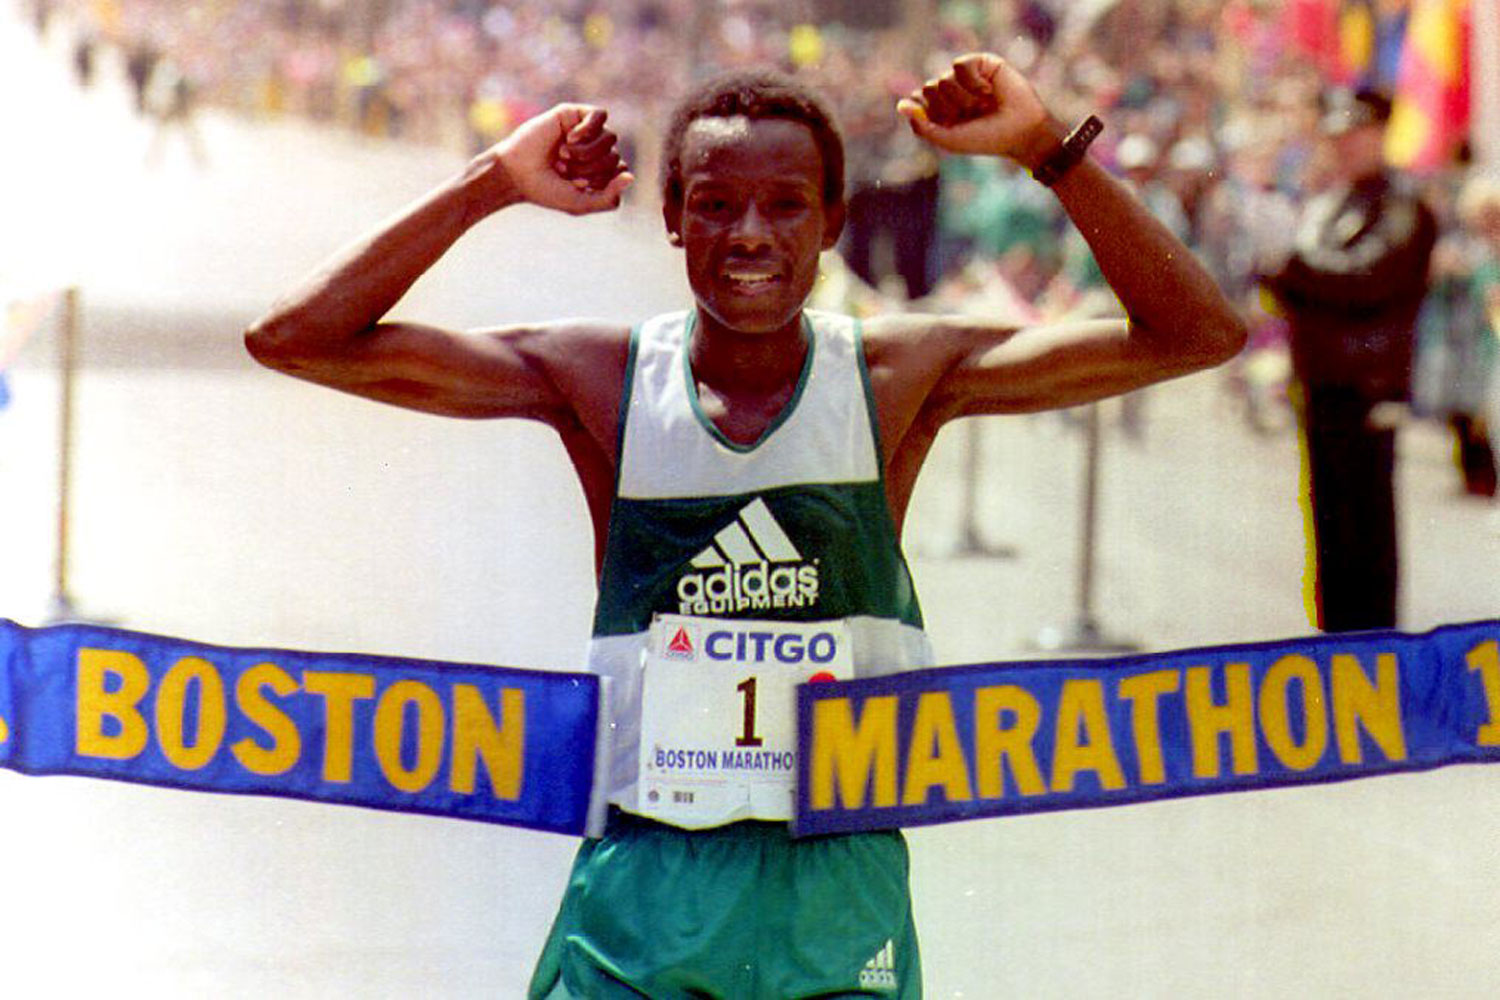 Ibrahim Hussein raises his arms as he crosses the finish line to win the Boston Marathon in 1992.